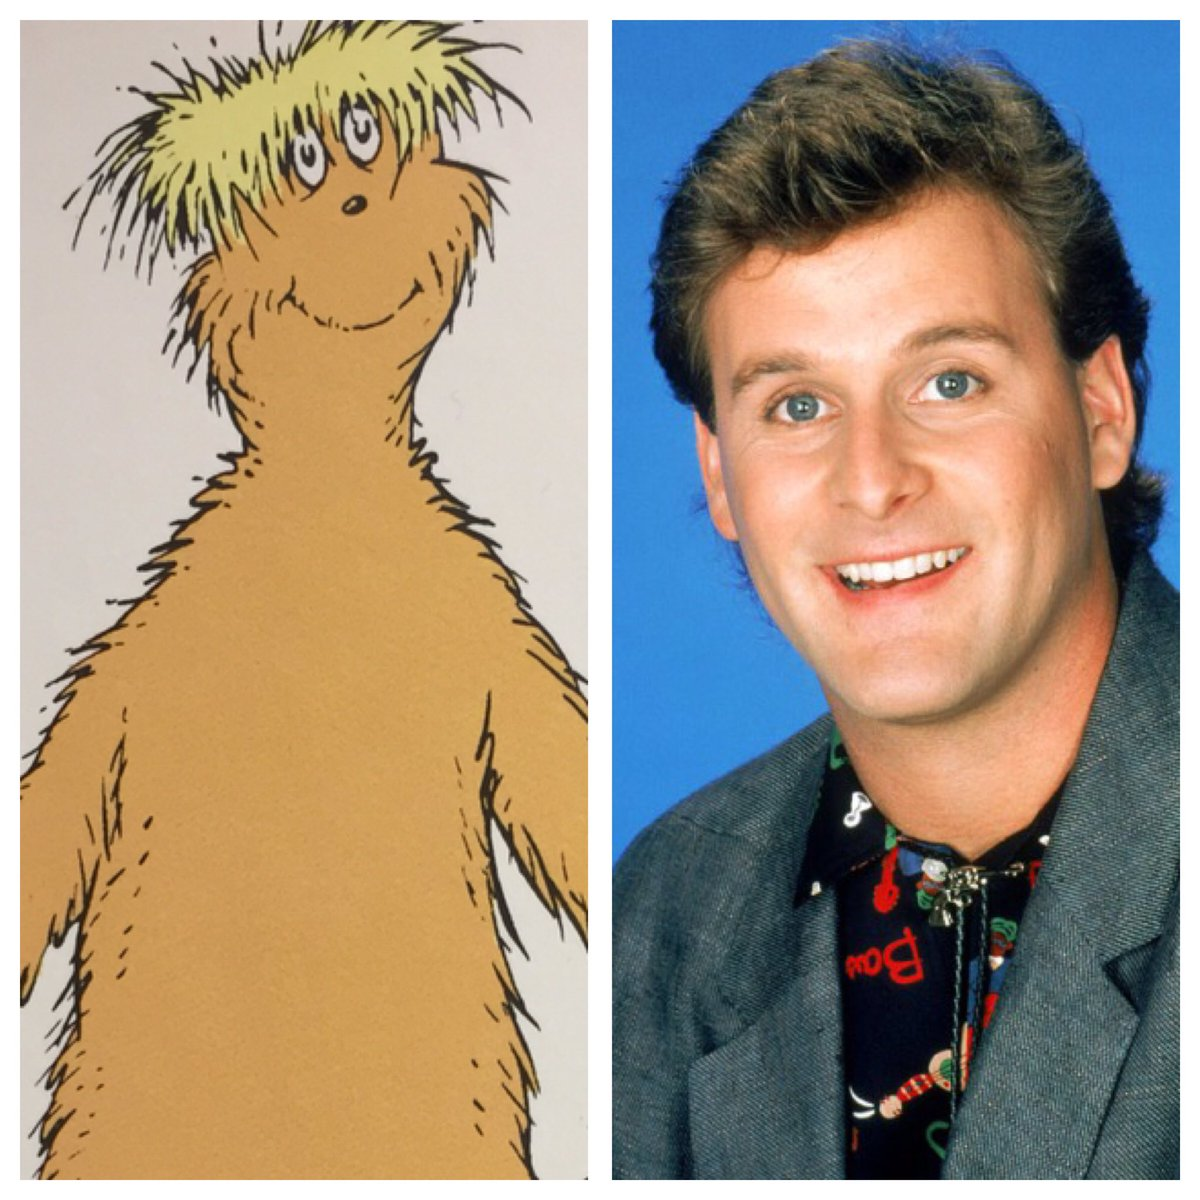 Before landing his role as Joey on Full House, Dave Coulier got his start modeling for Dr. Seuss. #InstantFanTheory <br>http://pic.twitter.com/w5ULIx6Ozf